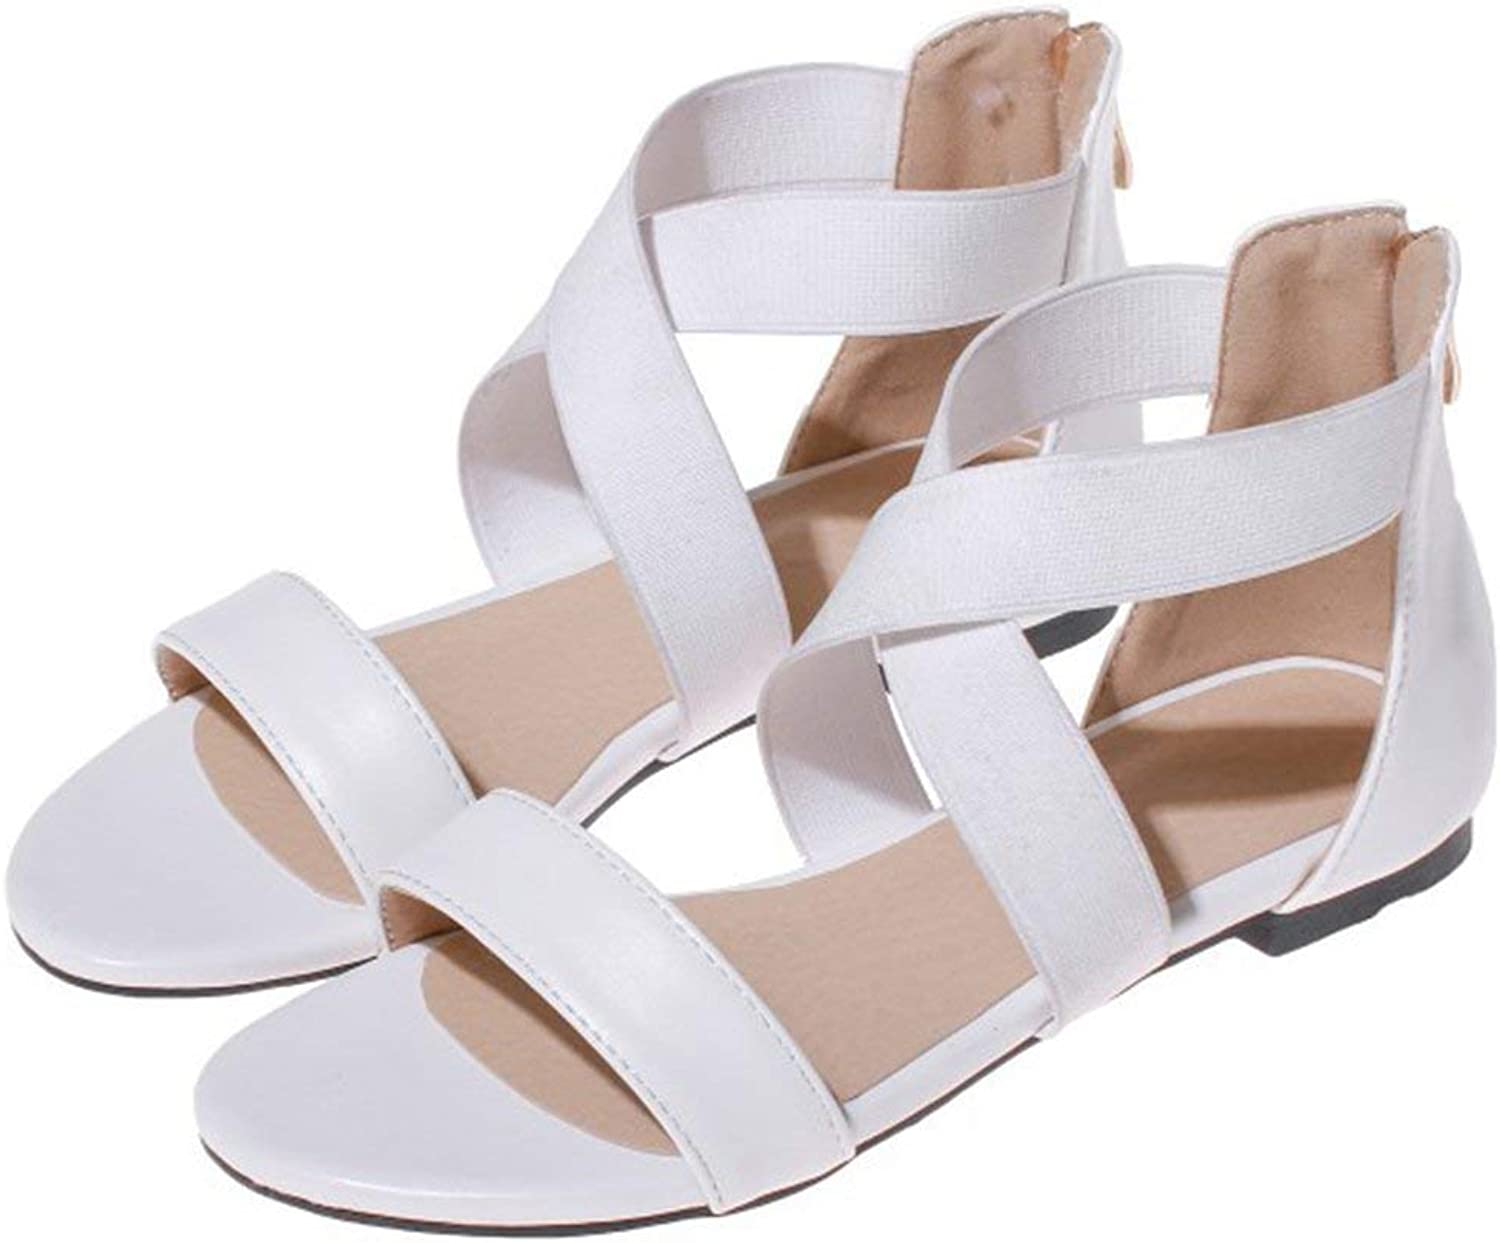 Gedigits Women's Comfort Open Toe Cross Strap Back Zipper Flat Sandals White 8.5 M US